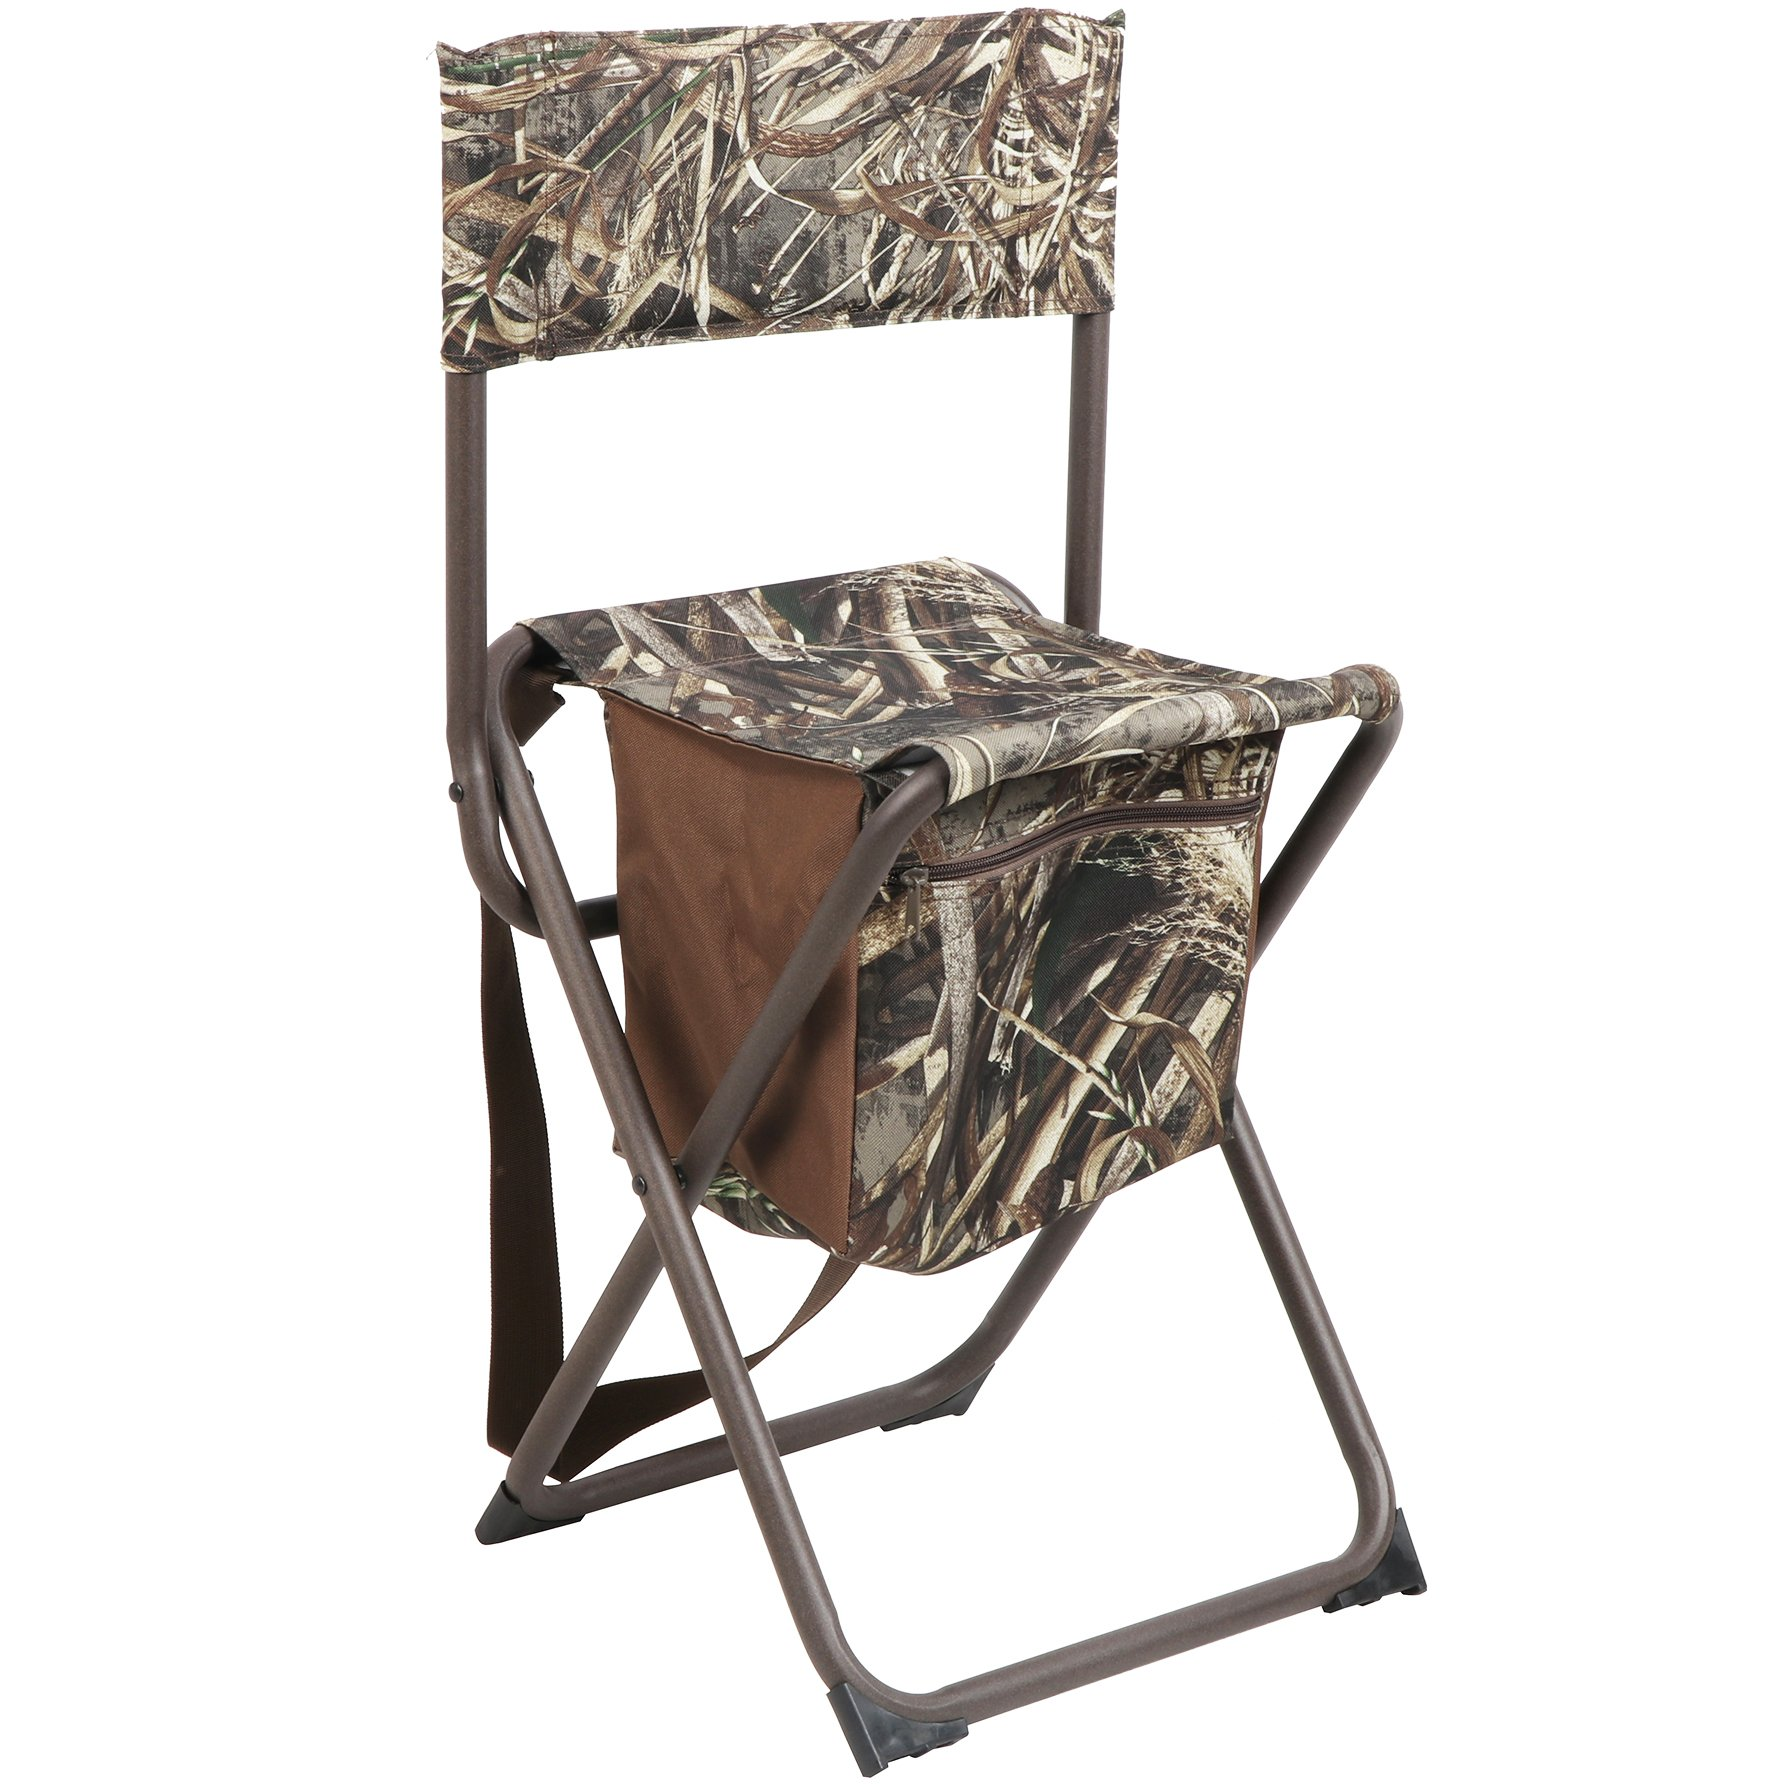 PORTAL Multifunctional Foldable Outdoor Chair Portable Fishing Stool with Storage Pocket, Camouflage by Timber Ridge